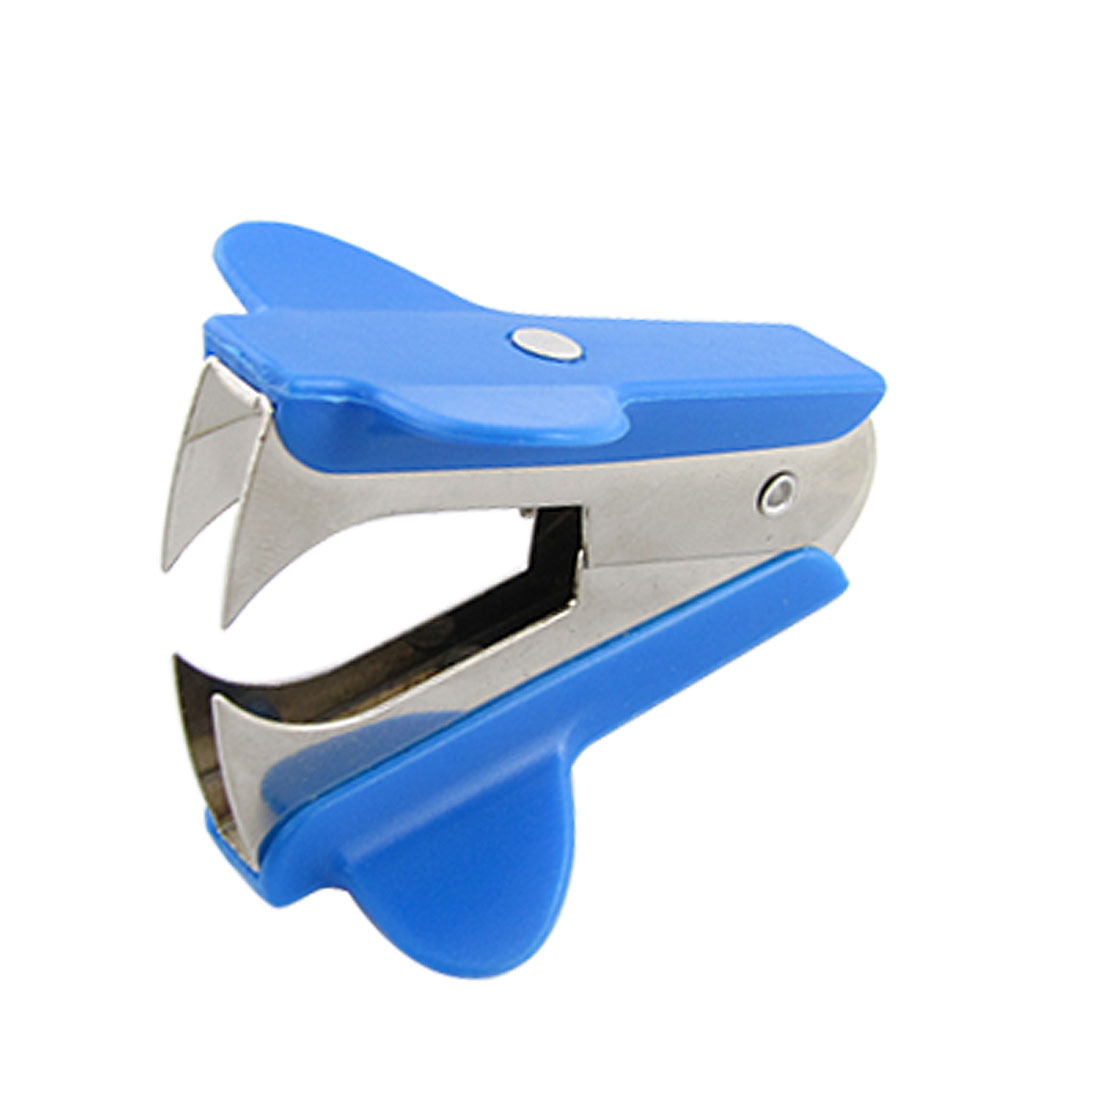 Mini Portable Jaw Style Blue Staple Remover for Home Office School